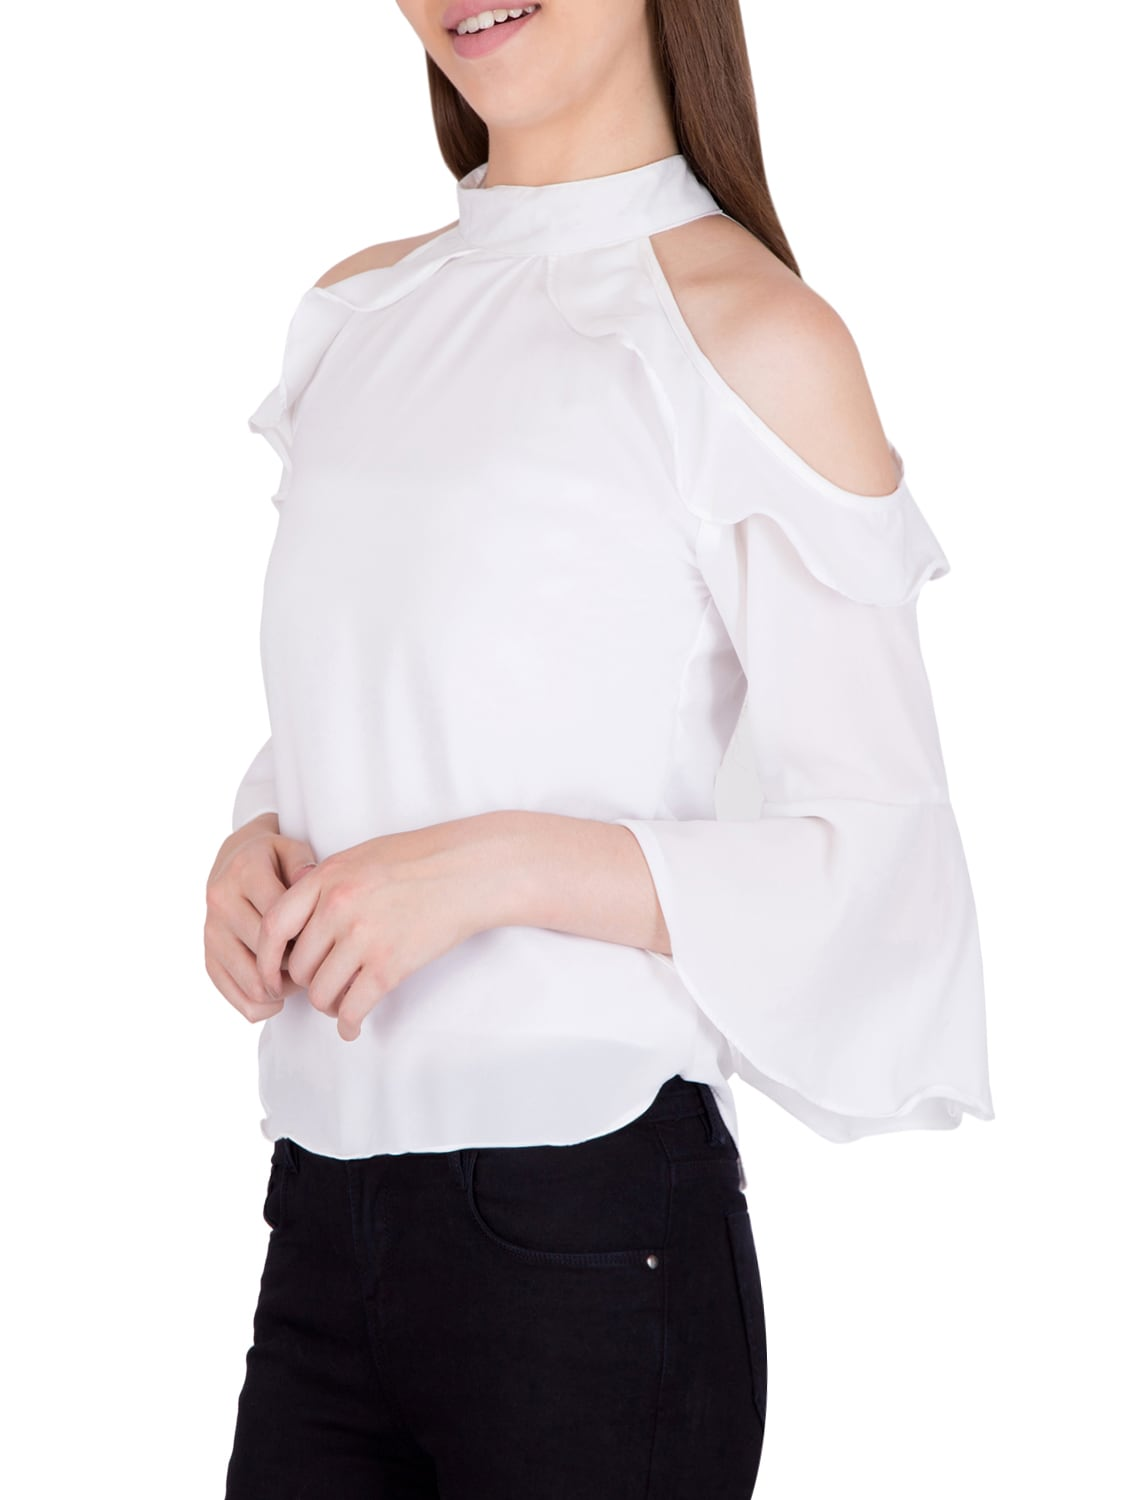 d62bd66384c6a2 Buy White Georgette Ruffle Top by Khhalisi - Online shopping for Tops in  India